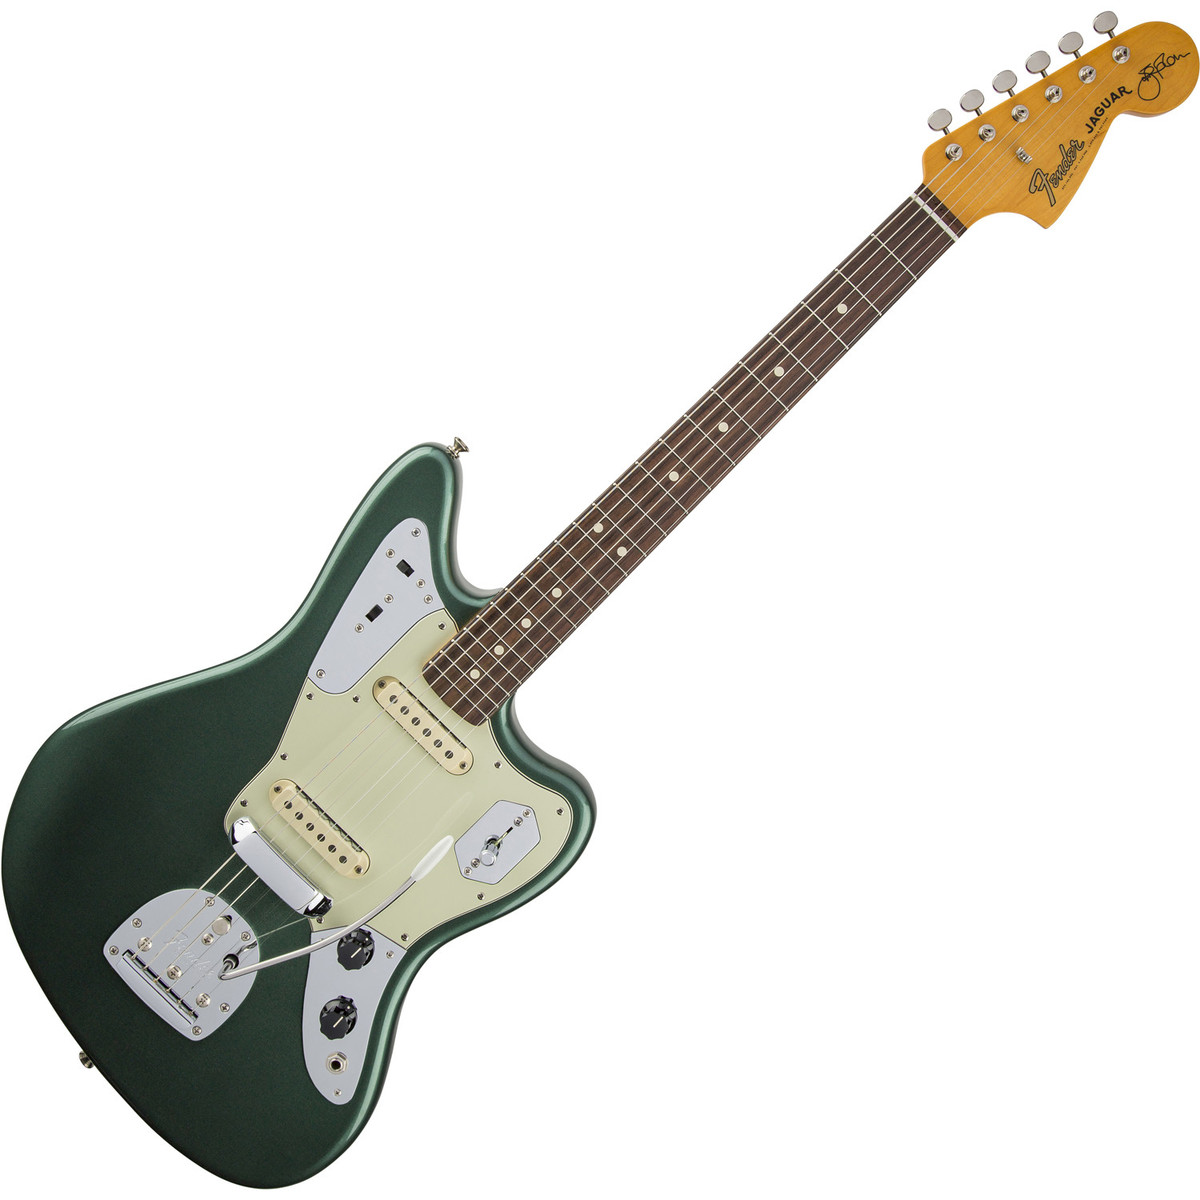 Johnny Marr Jaguar : fender johnny marr jaguar sherwood green limited edition at ~ Russianpoet.info Haus und Dekorationen